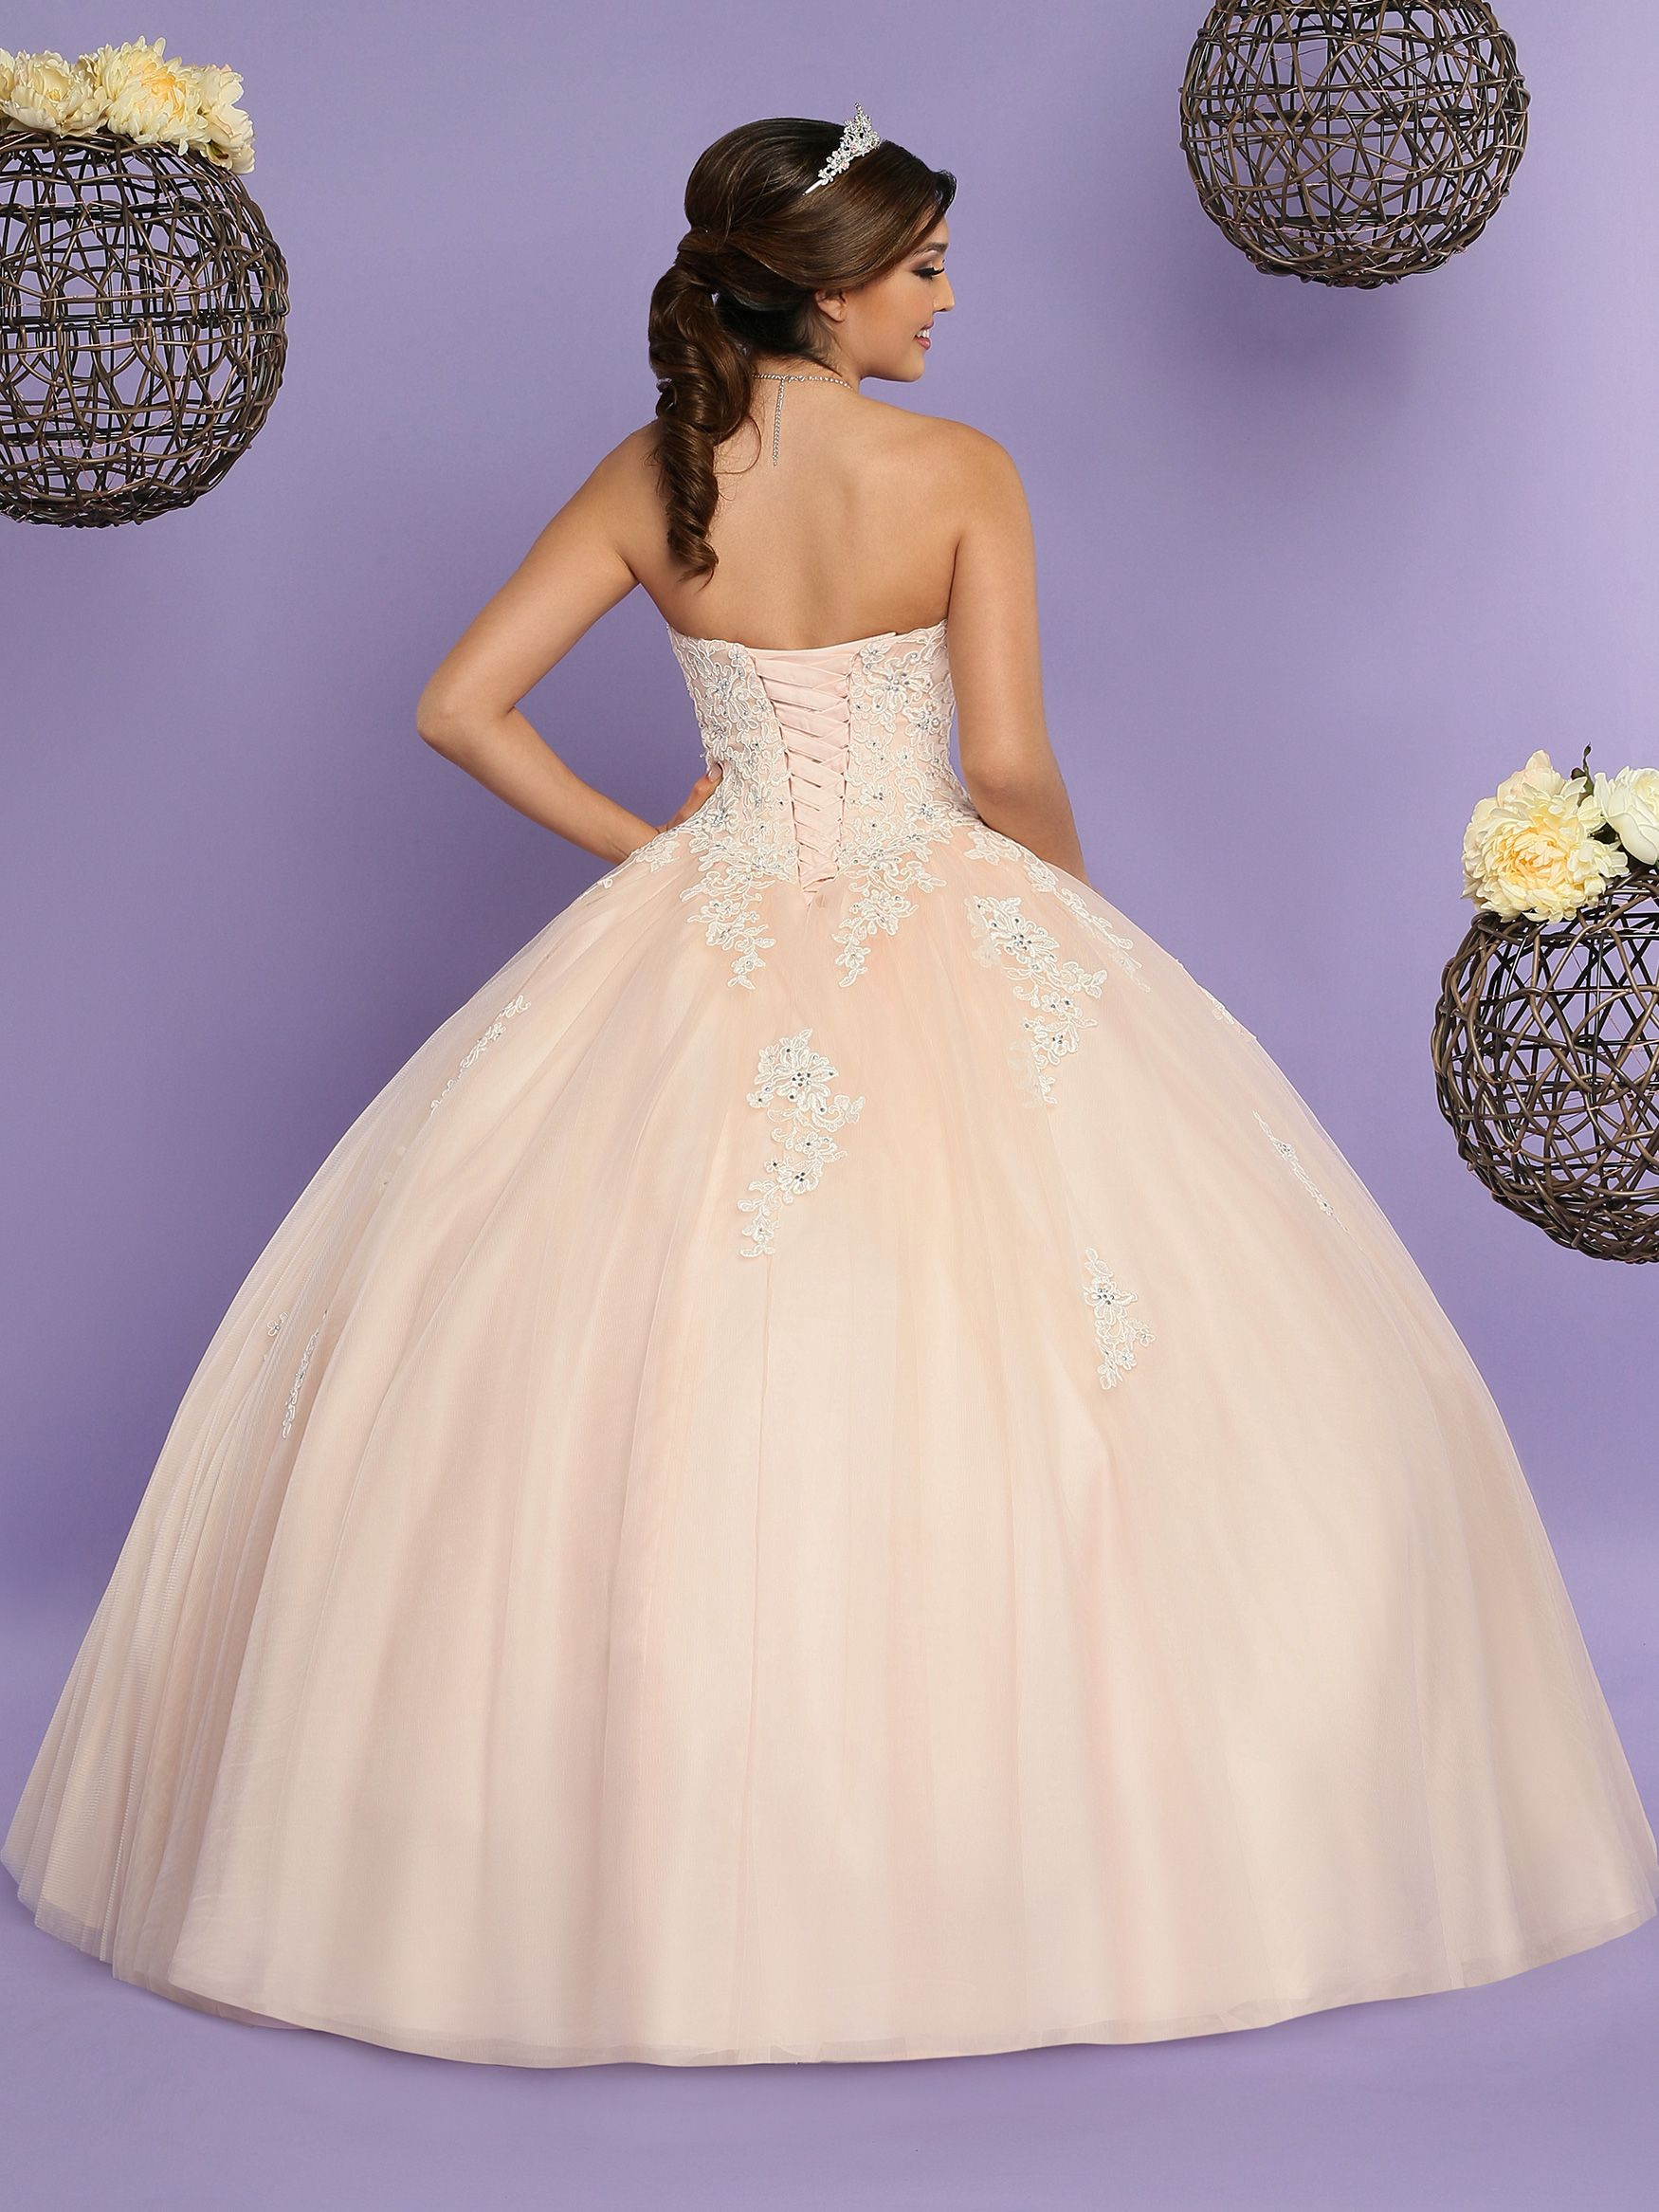 Royal themed wedding dresses  Check out this beautiful dress by Q by DaVinci Q by DaVinci Style